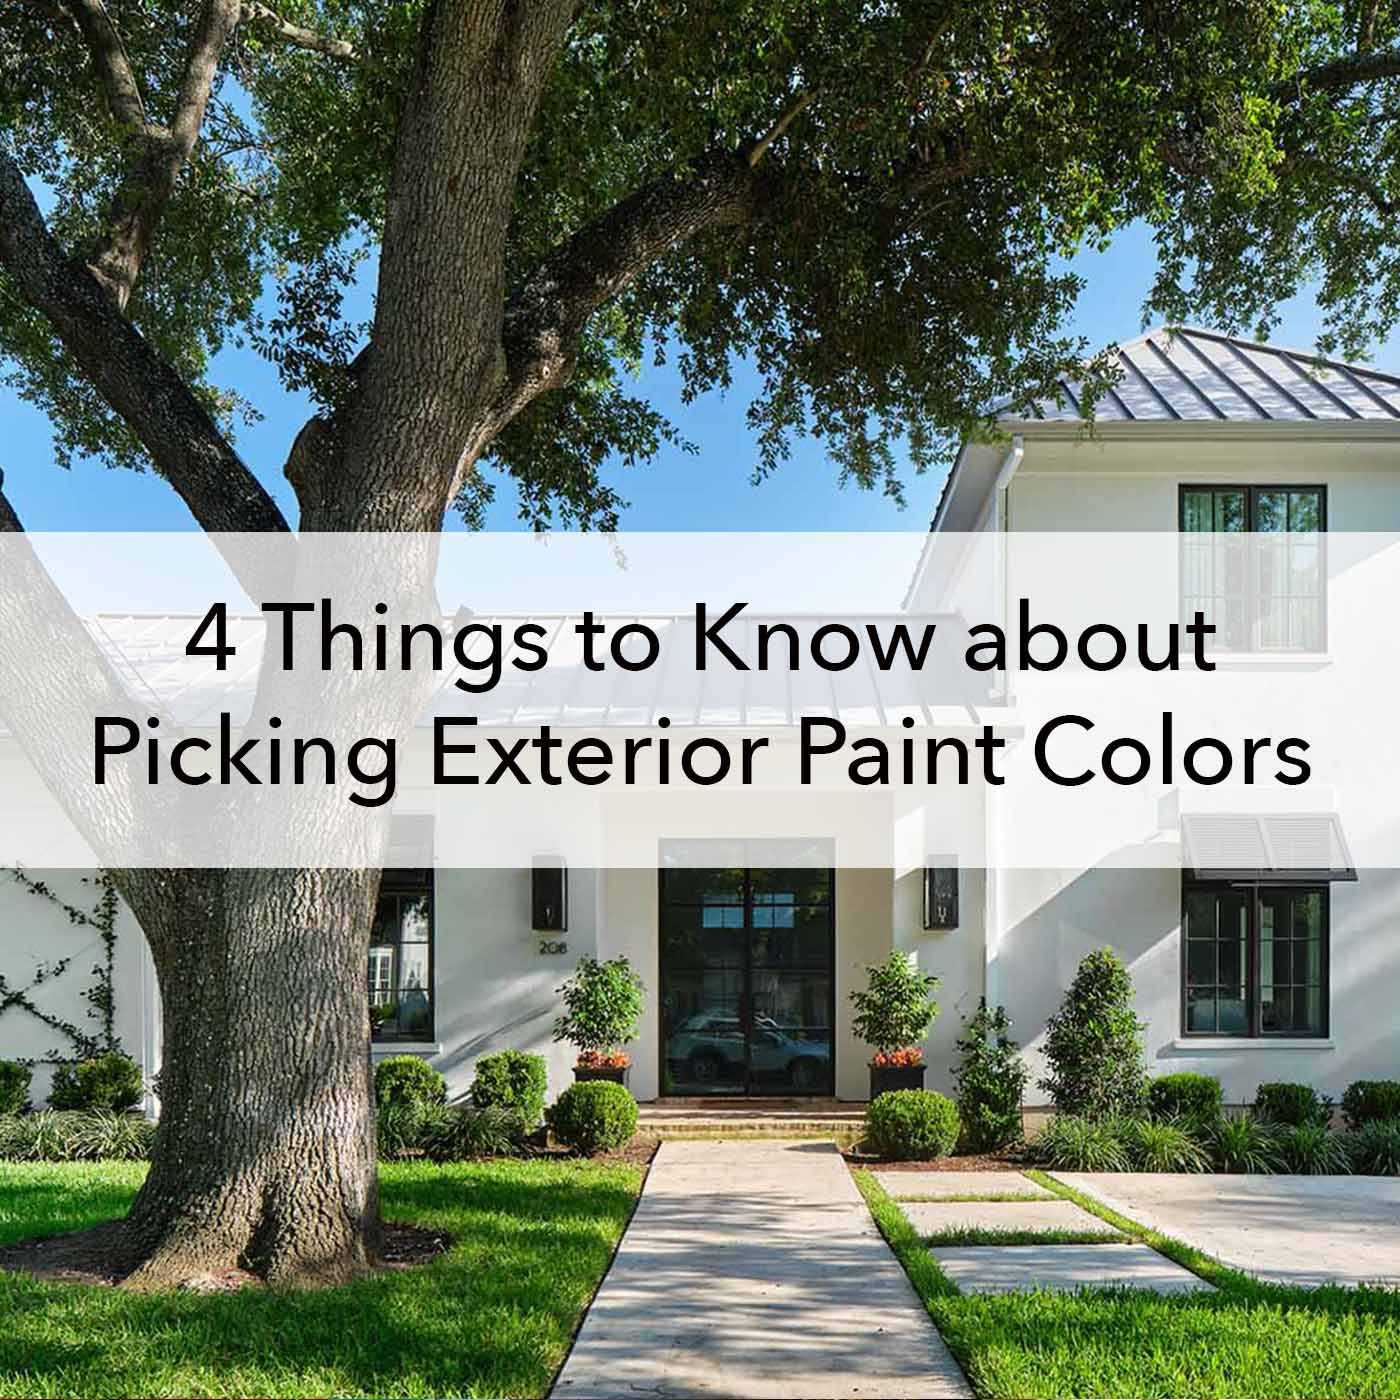 4 things to know about picking exterior paint colors, blog